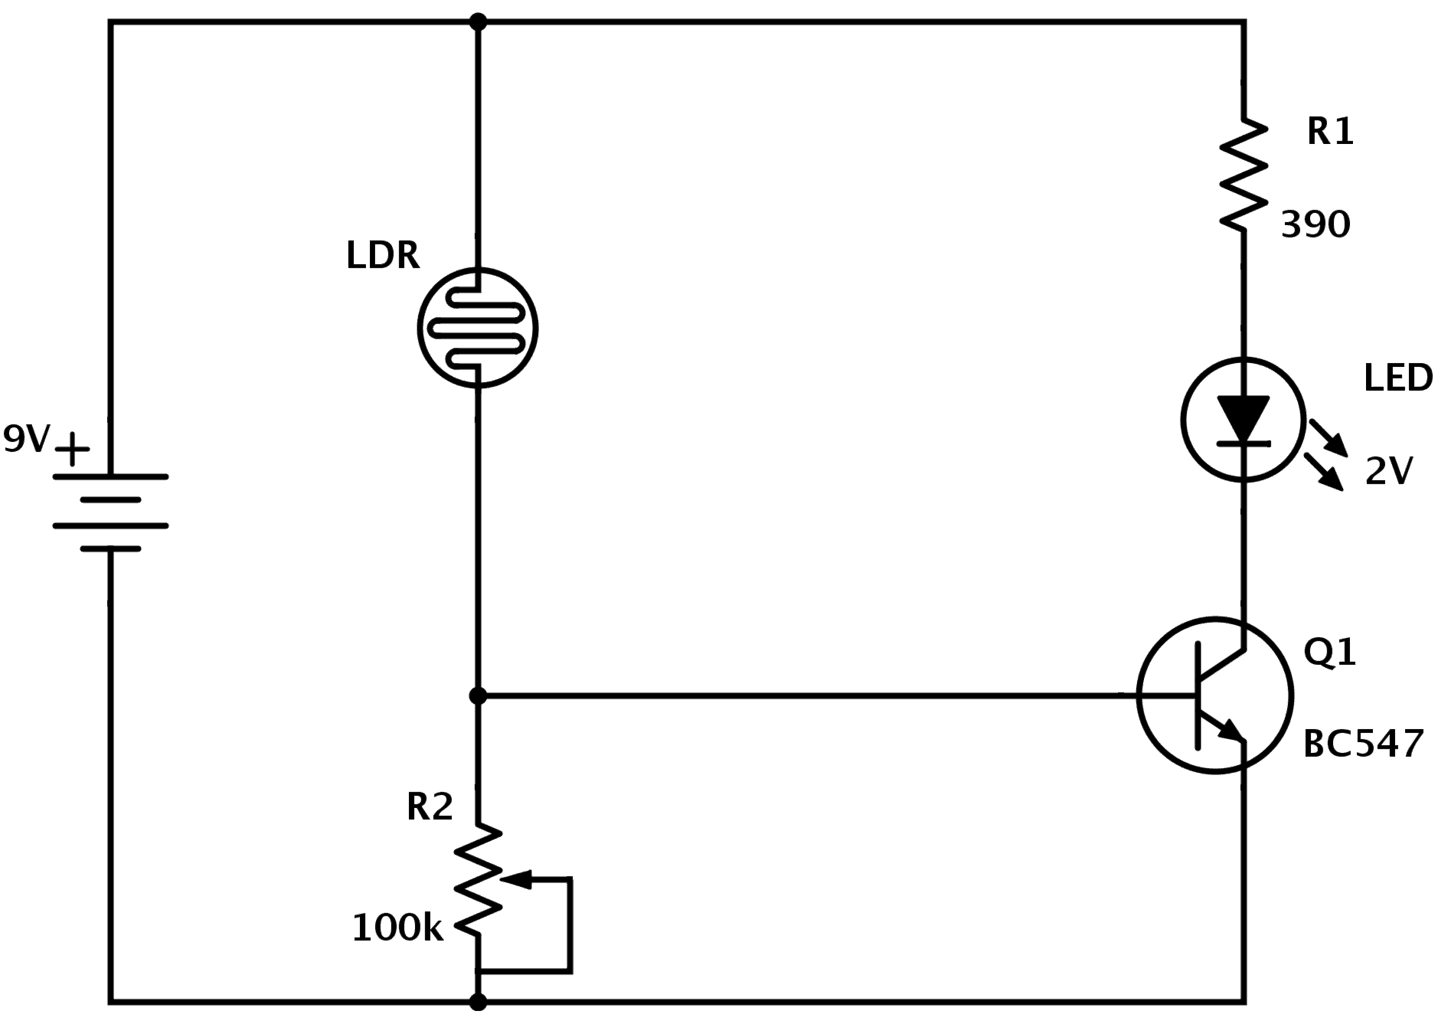 Schematic Circuit Diagram Of Easy Diy Wiring Diagrams Simple Ammeter How To Read And Understand Any Rh Build Electronic Circuits Com Bulb Schematics